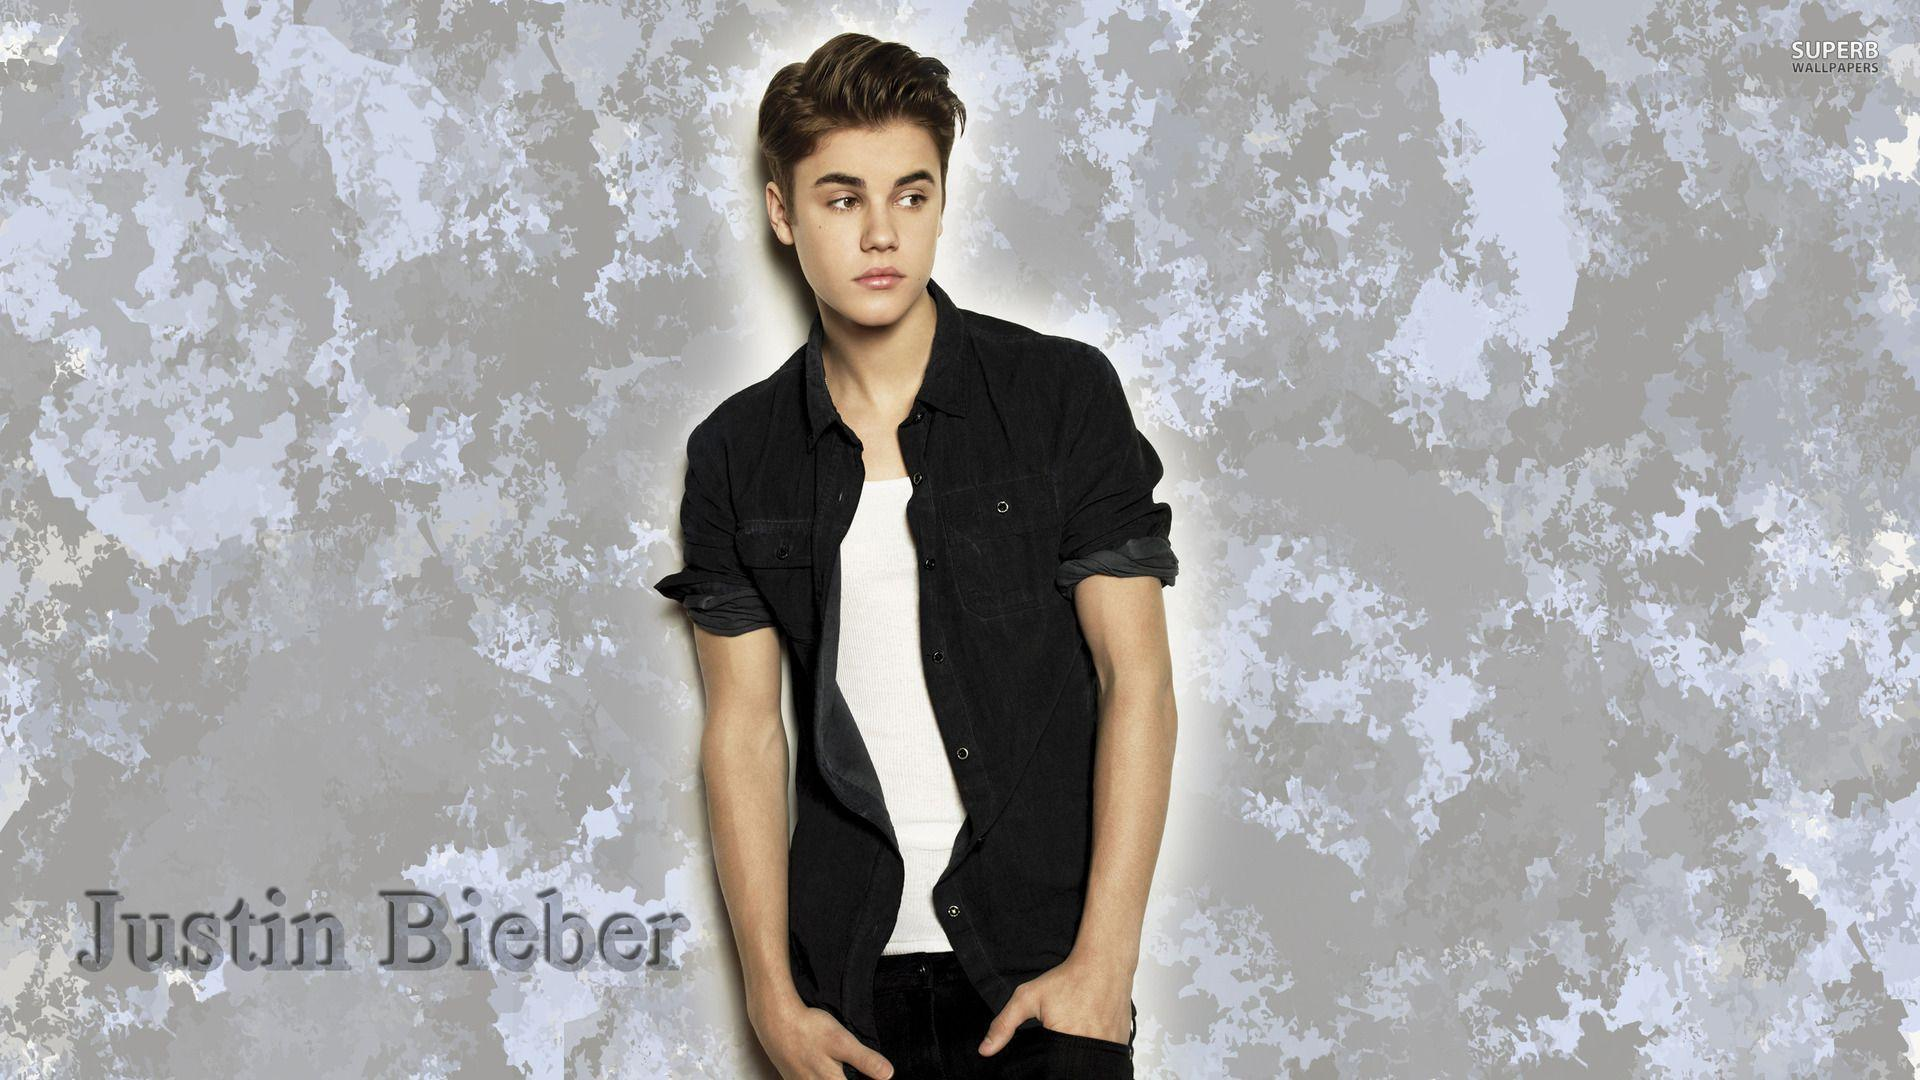 Justin Bieber Wallpapers HD 2017 - Wallpaper Cave